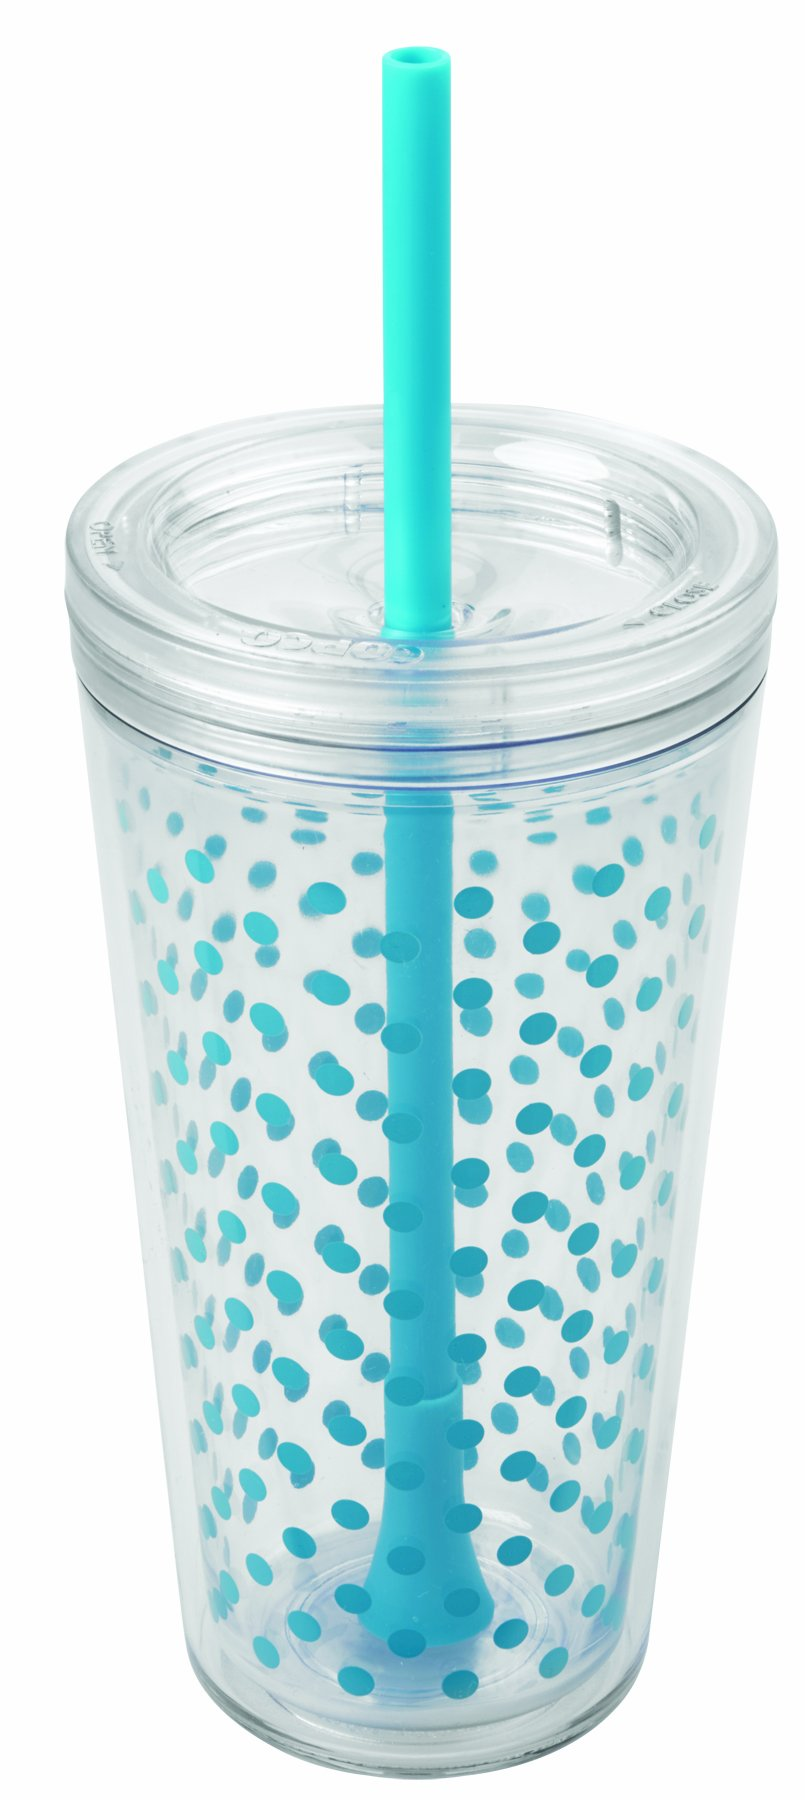 Copco 2510-0430 Minimus Double Wall Insulated Tumbler with Removable Straw, 24-Ounce, Cyan Blue Dots